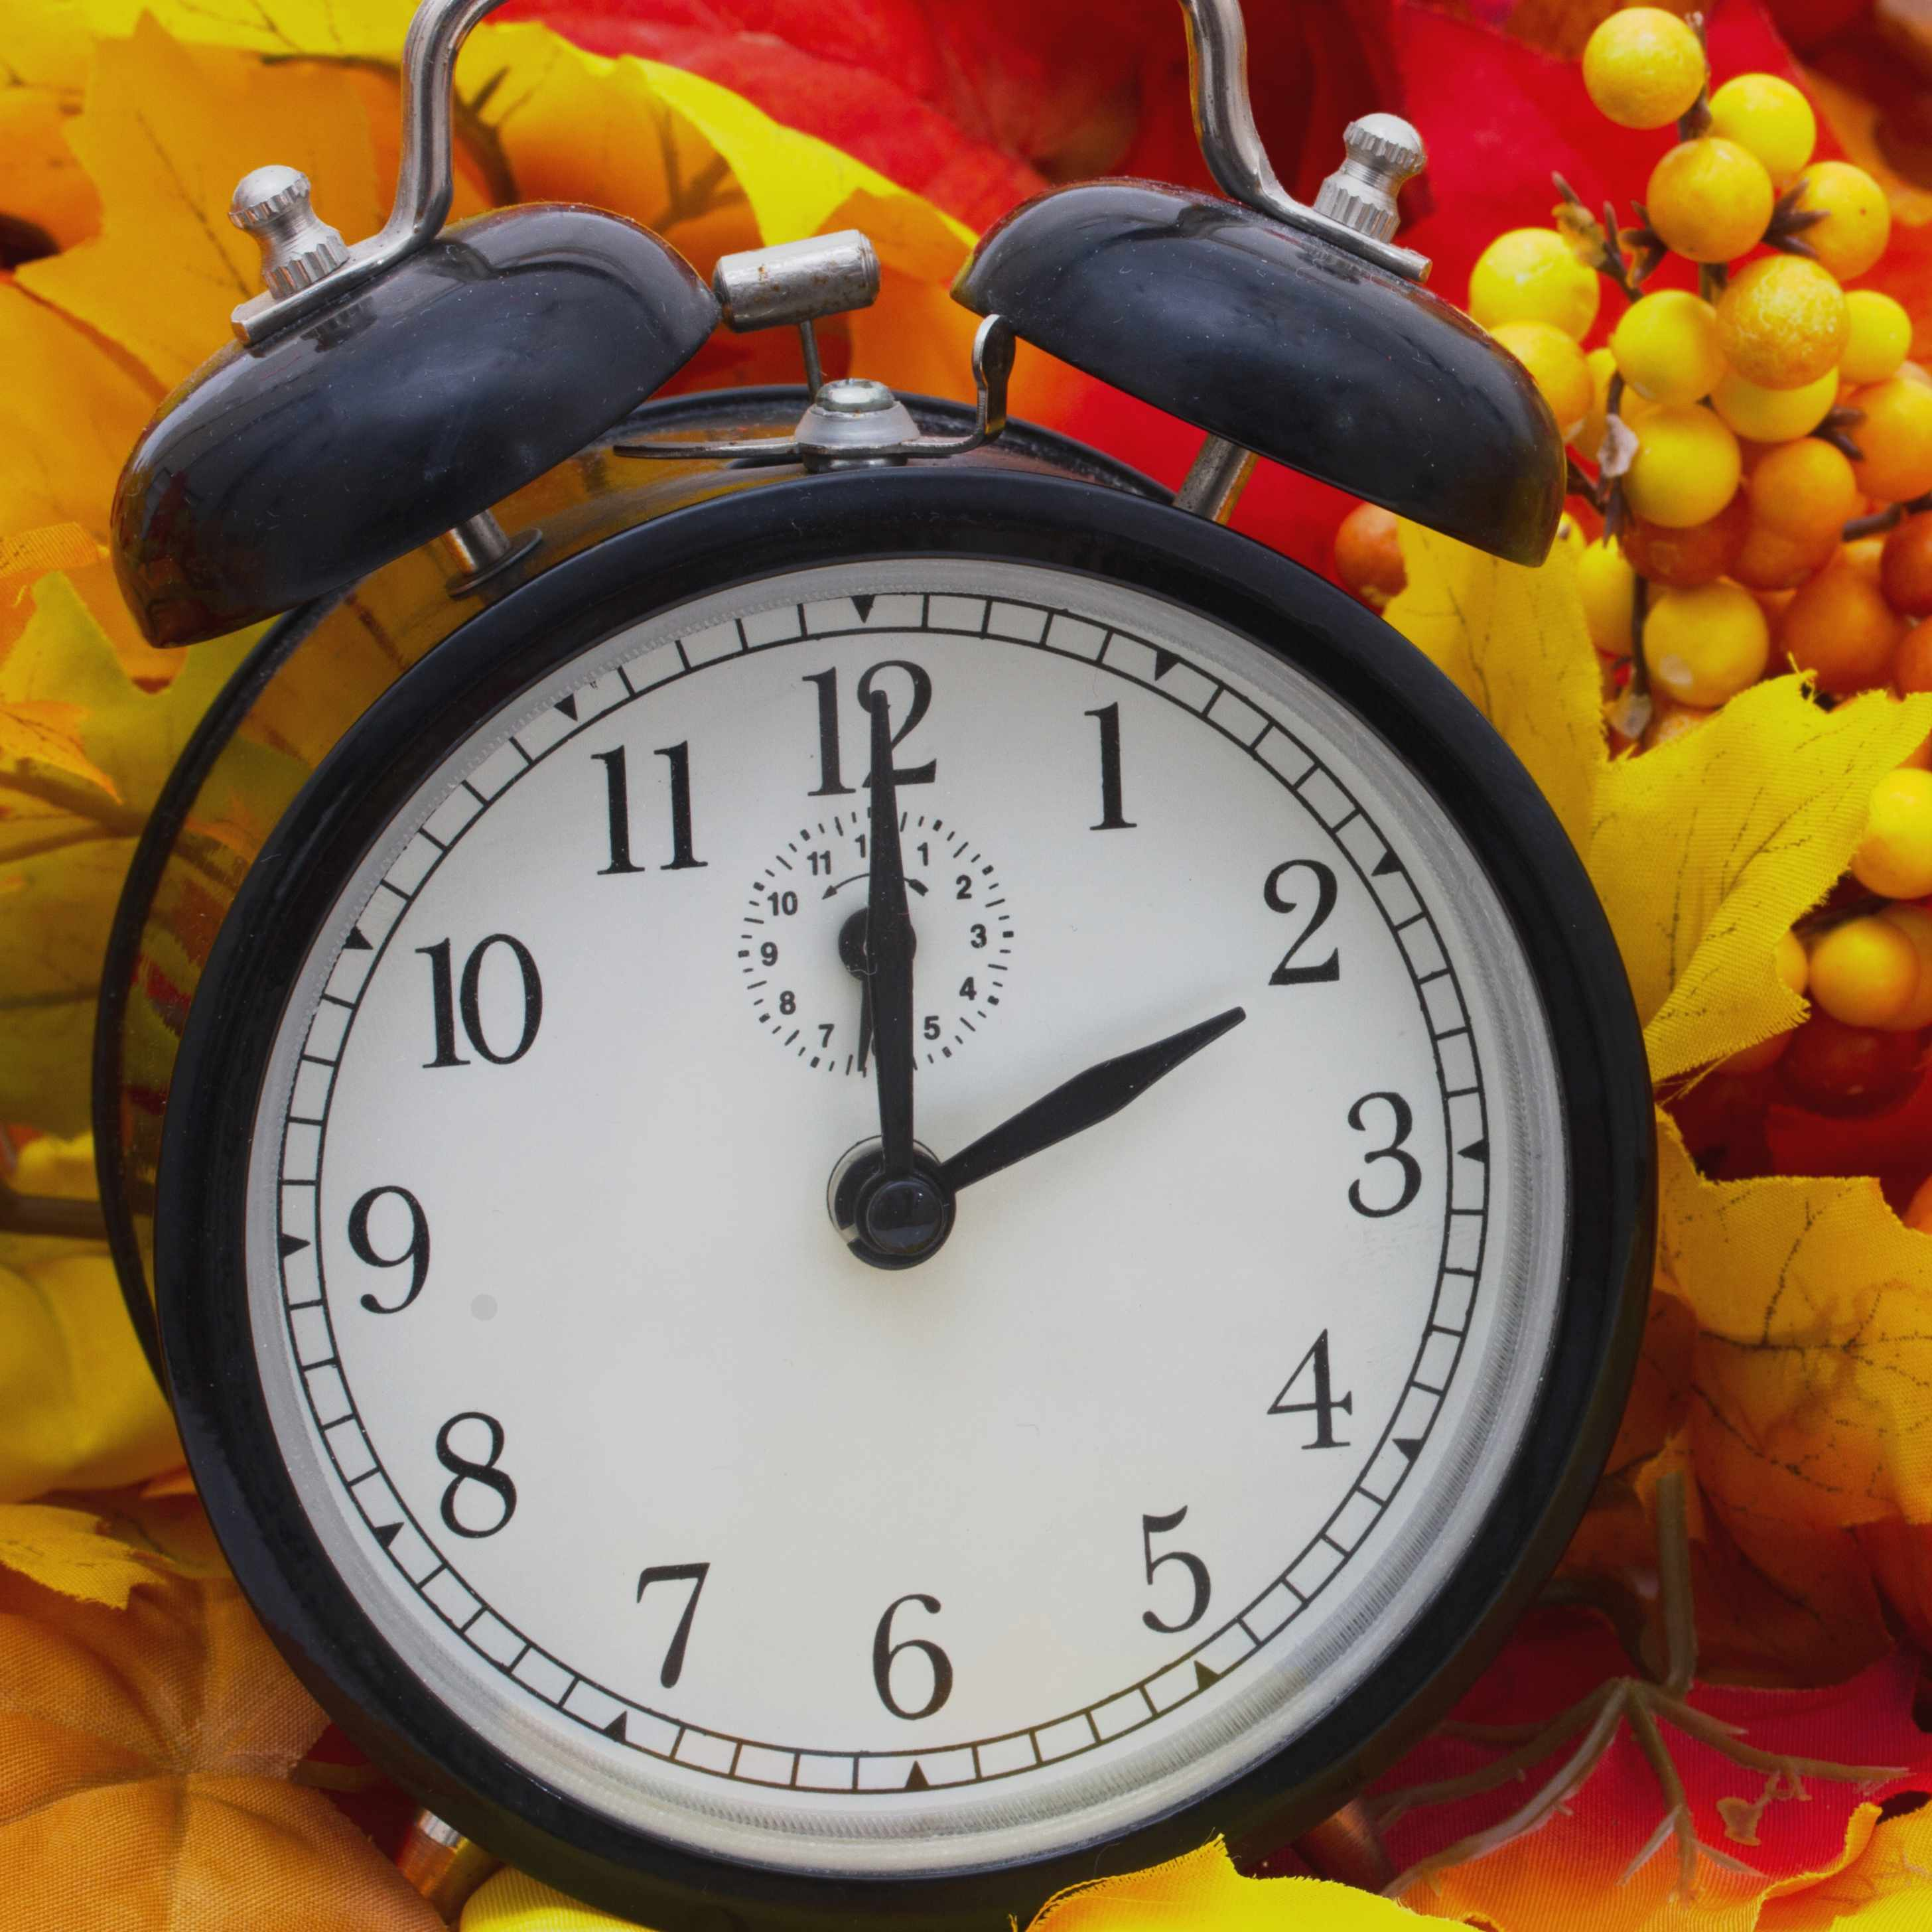 Autumn time change with an alarm clock and Autumn leaves with a pumpkin